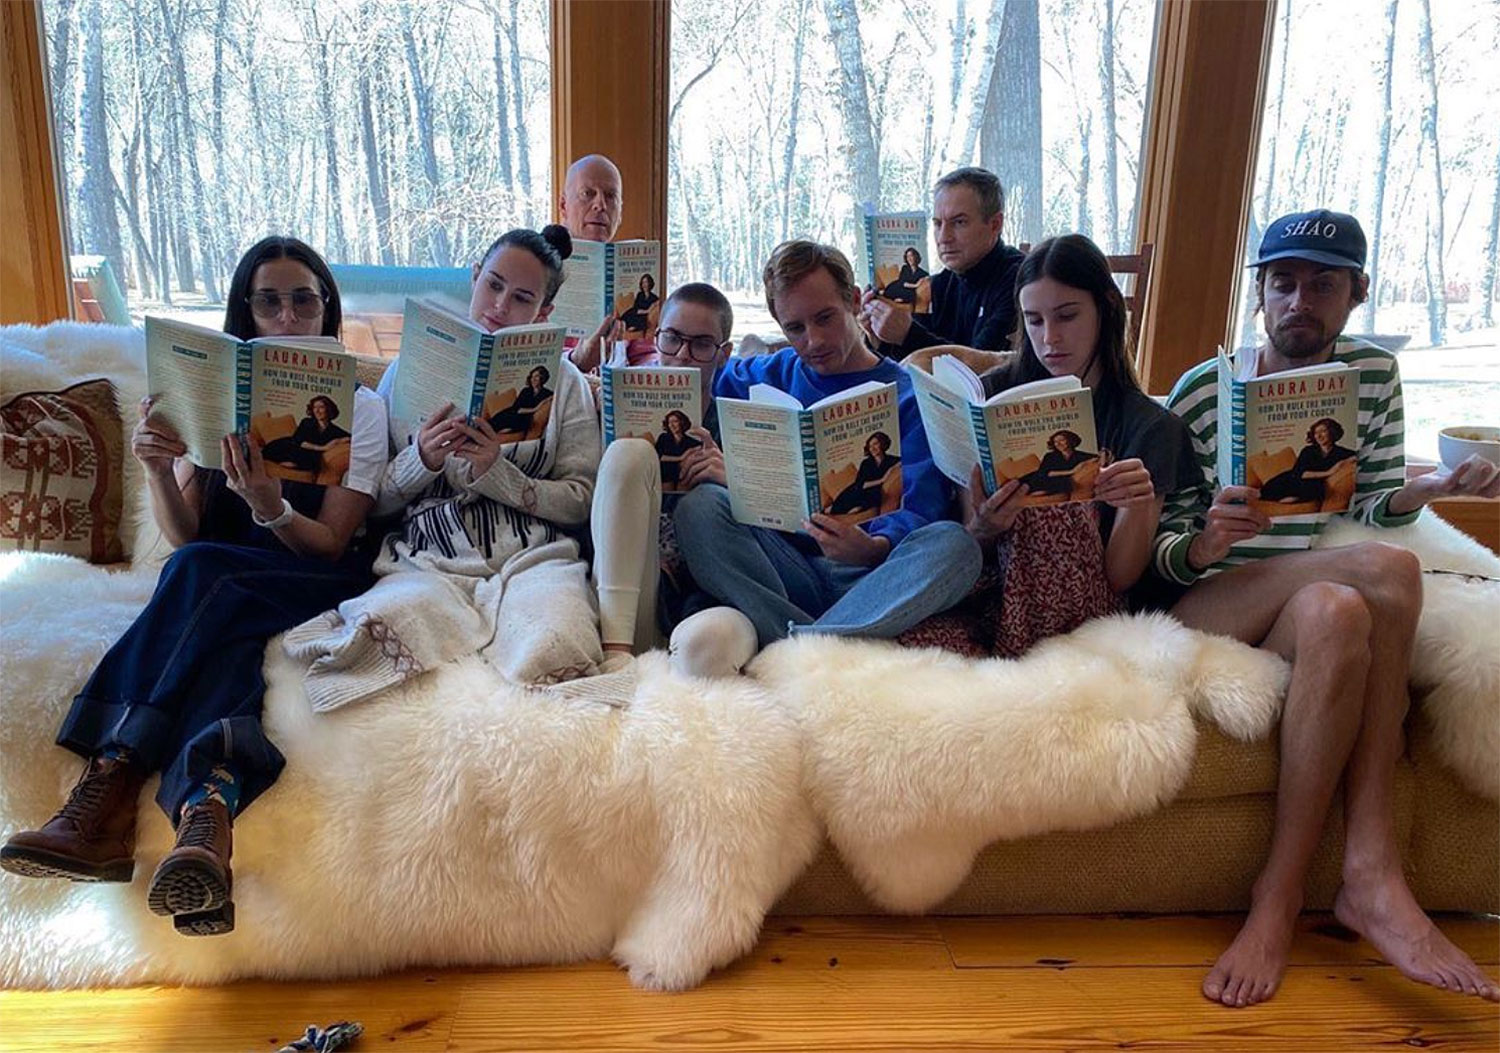 Demi Moore Bruce Willis family book club